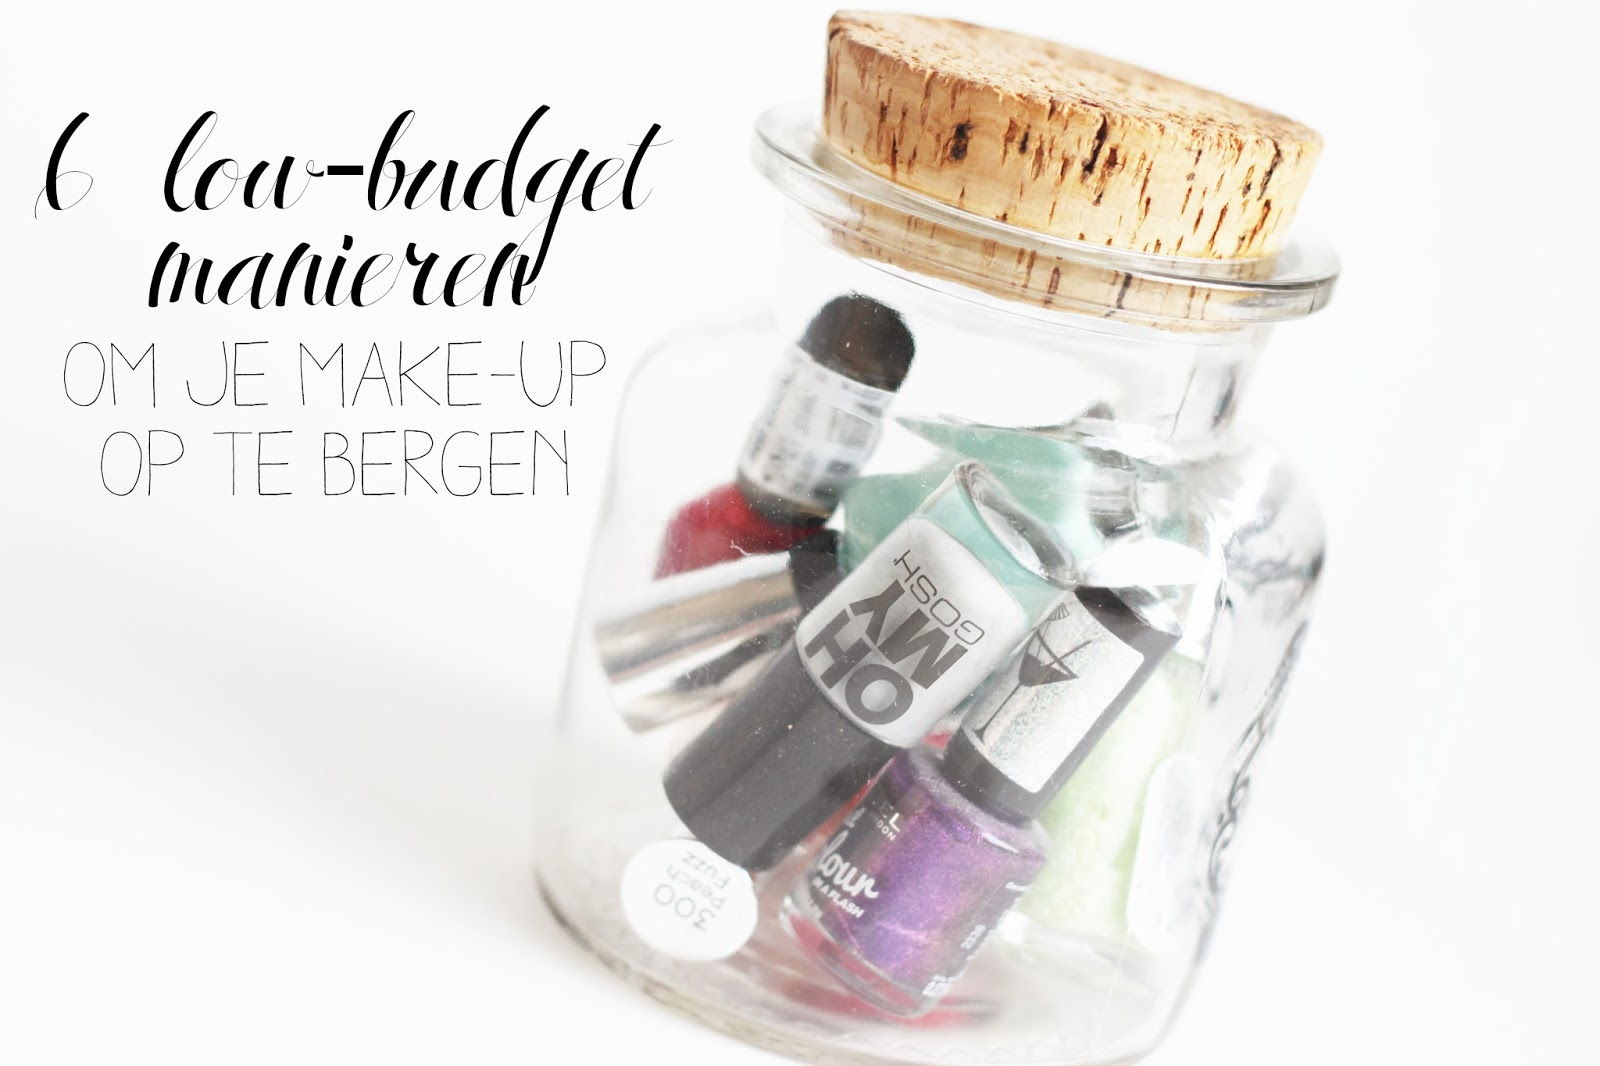 Xenos Weckpot Tips 6 Low Budget Manieren Om Je Make Up Op Te Bergen The